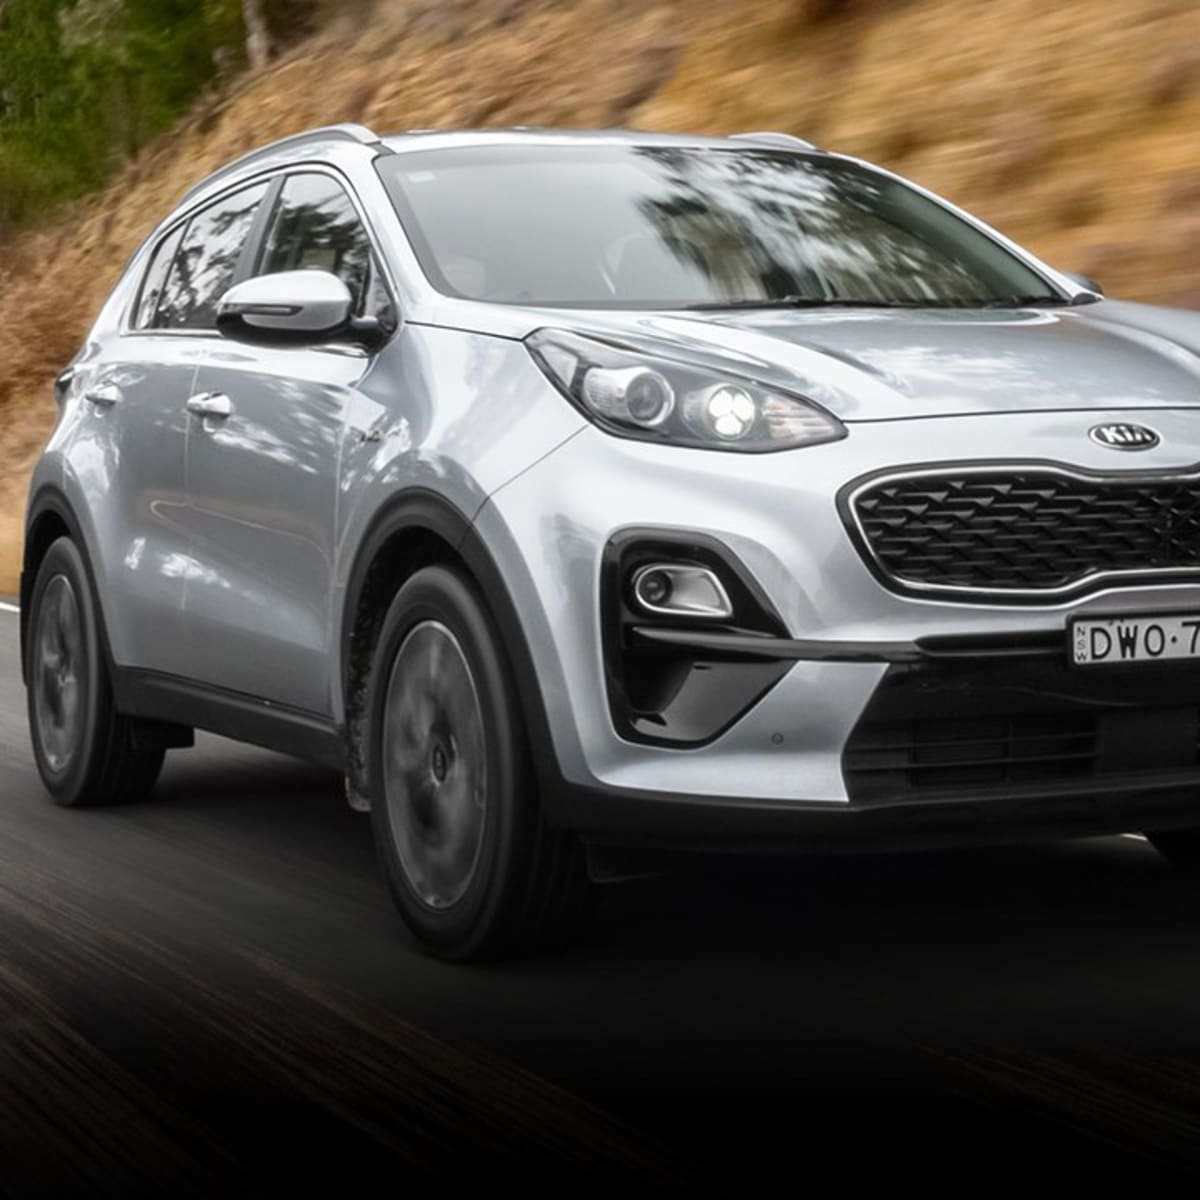 92 Best 2019 Kia Sportage Review Images